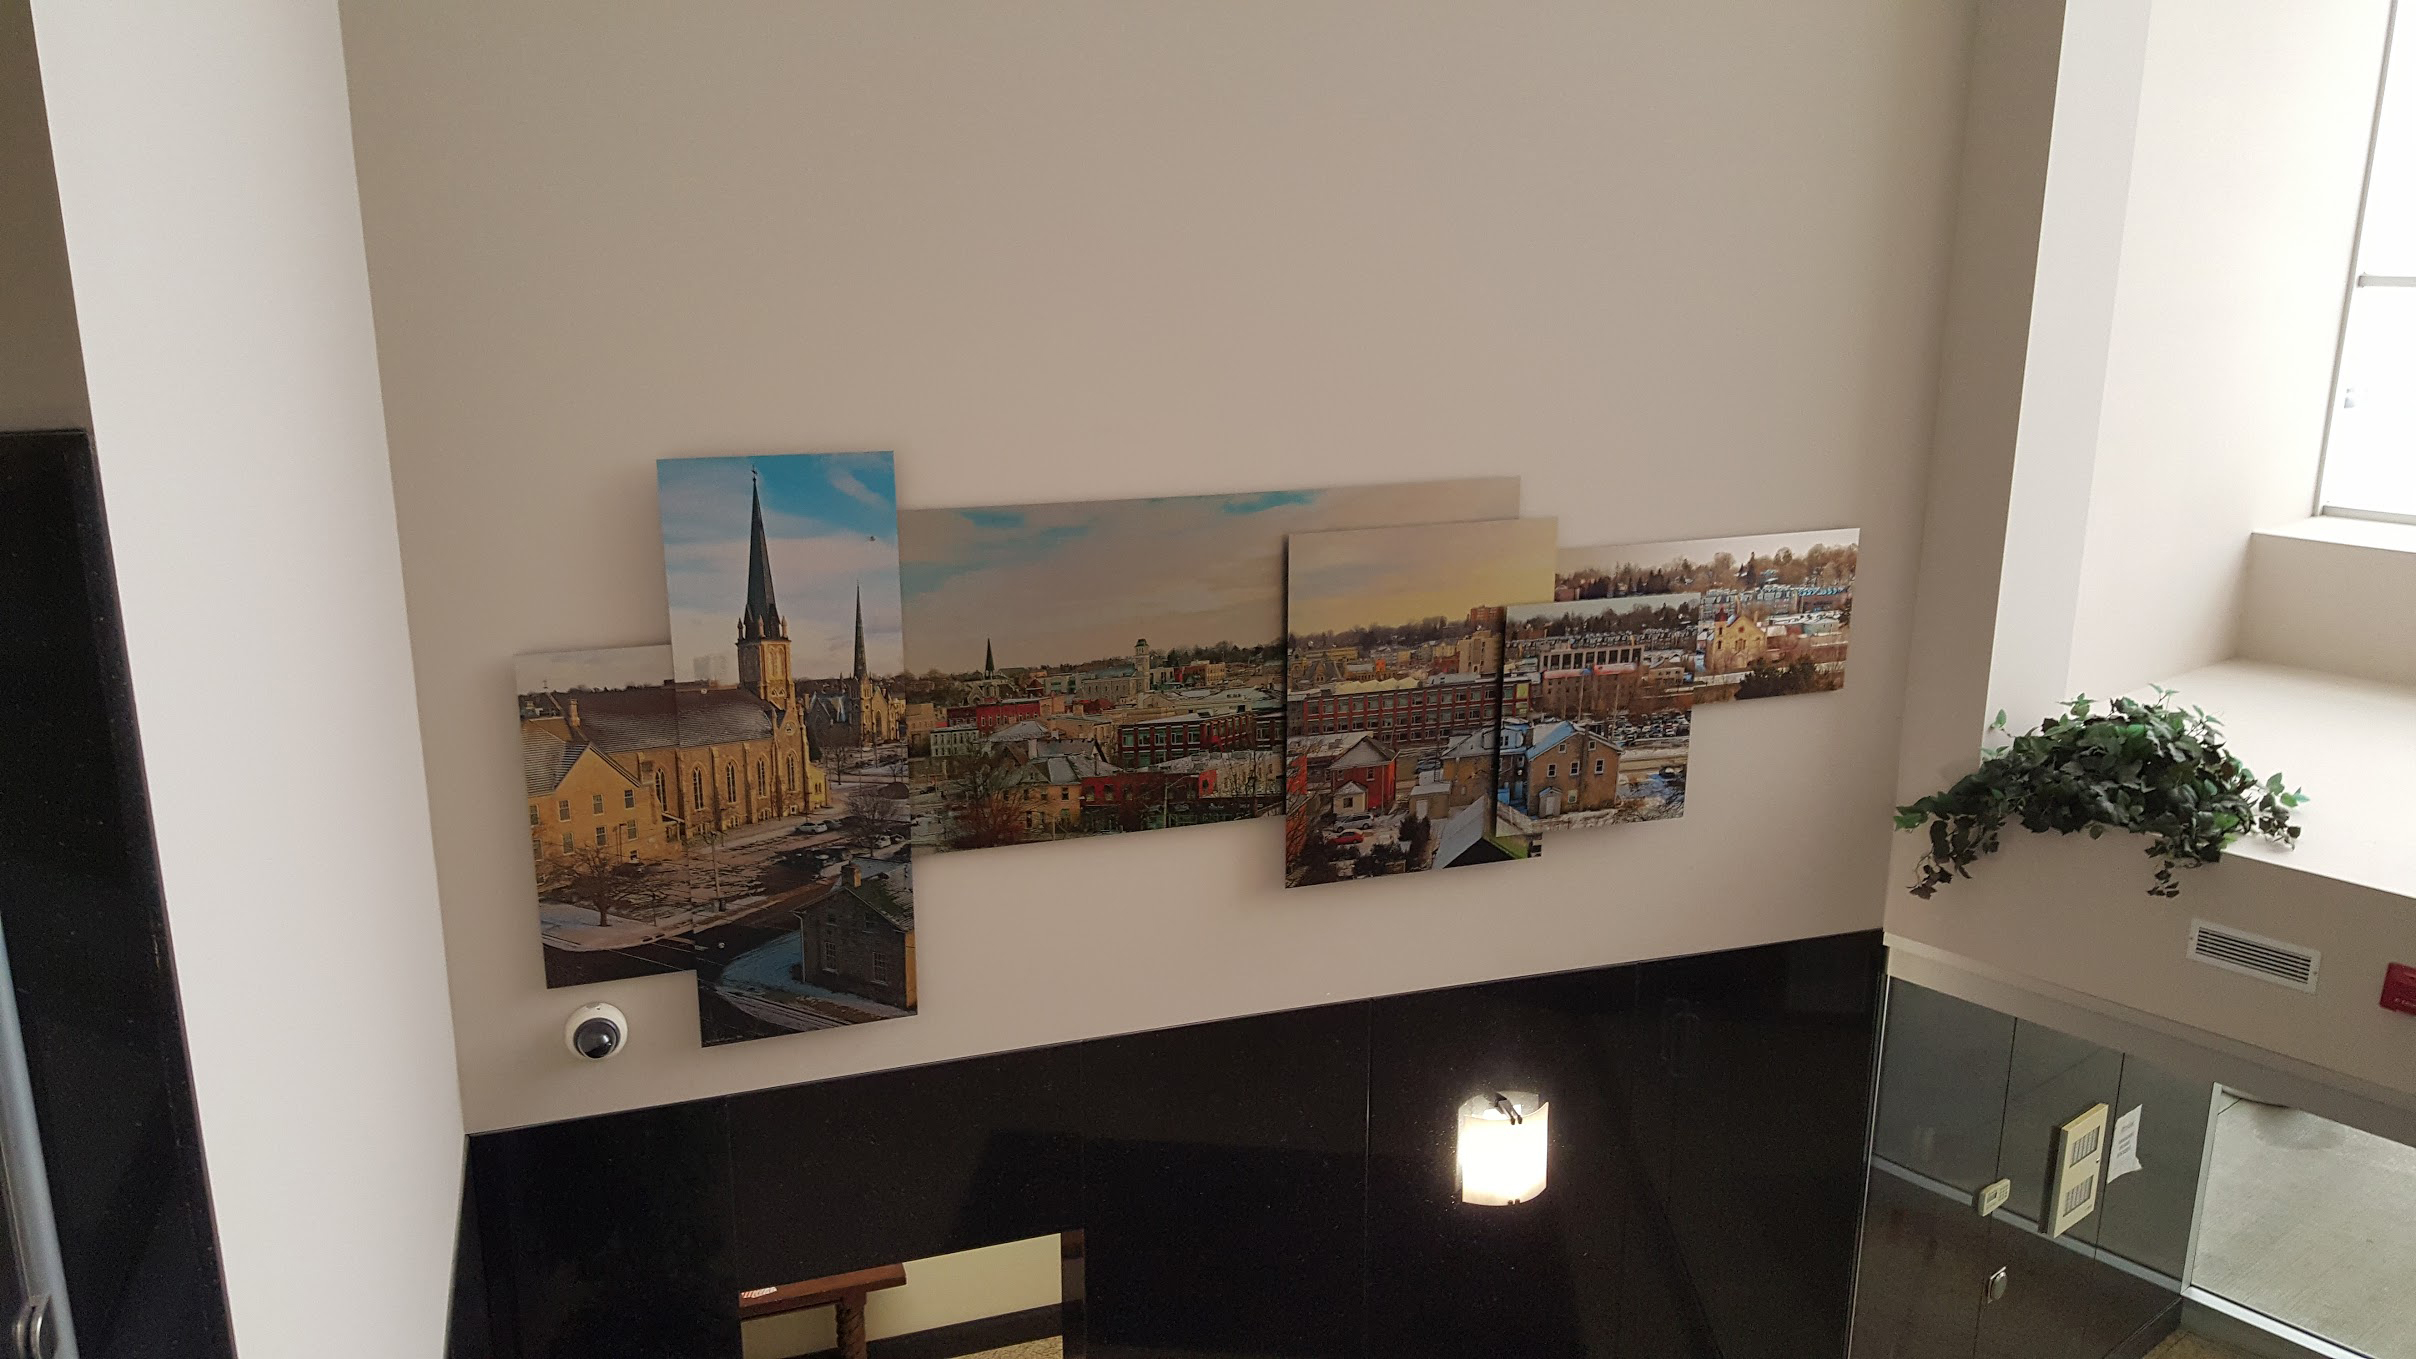 3D panoramic view of Galt layered on brushed aluminum - corporate art by Alex Krajewski